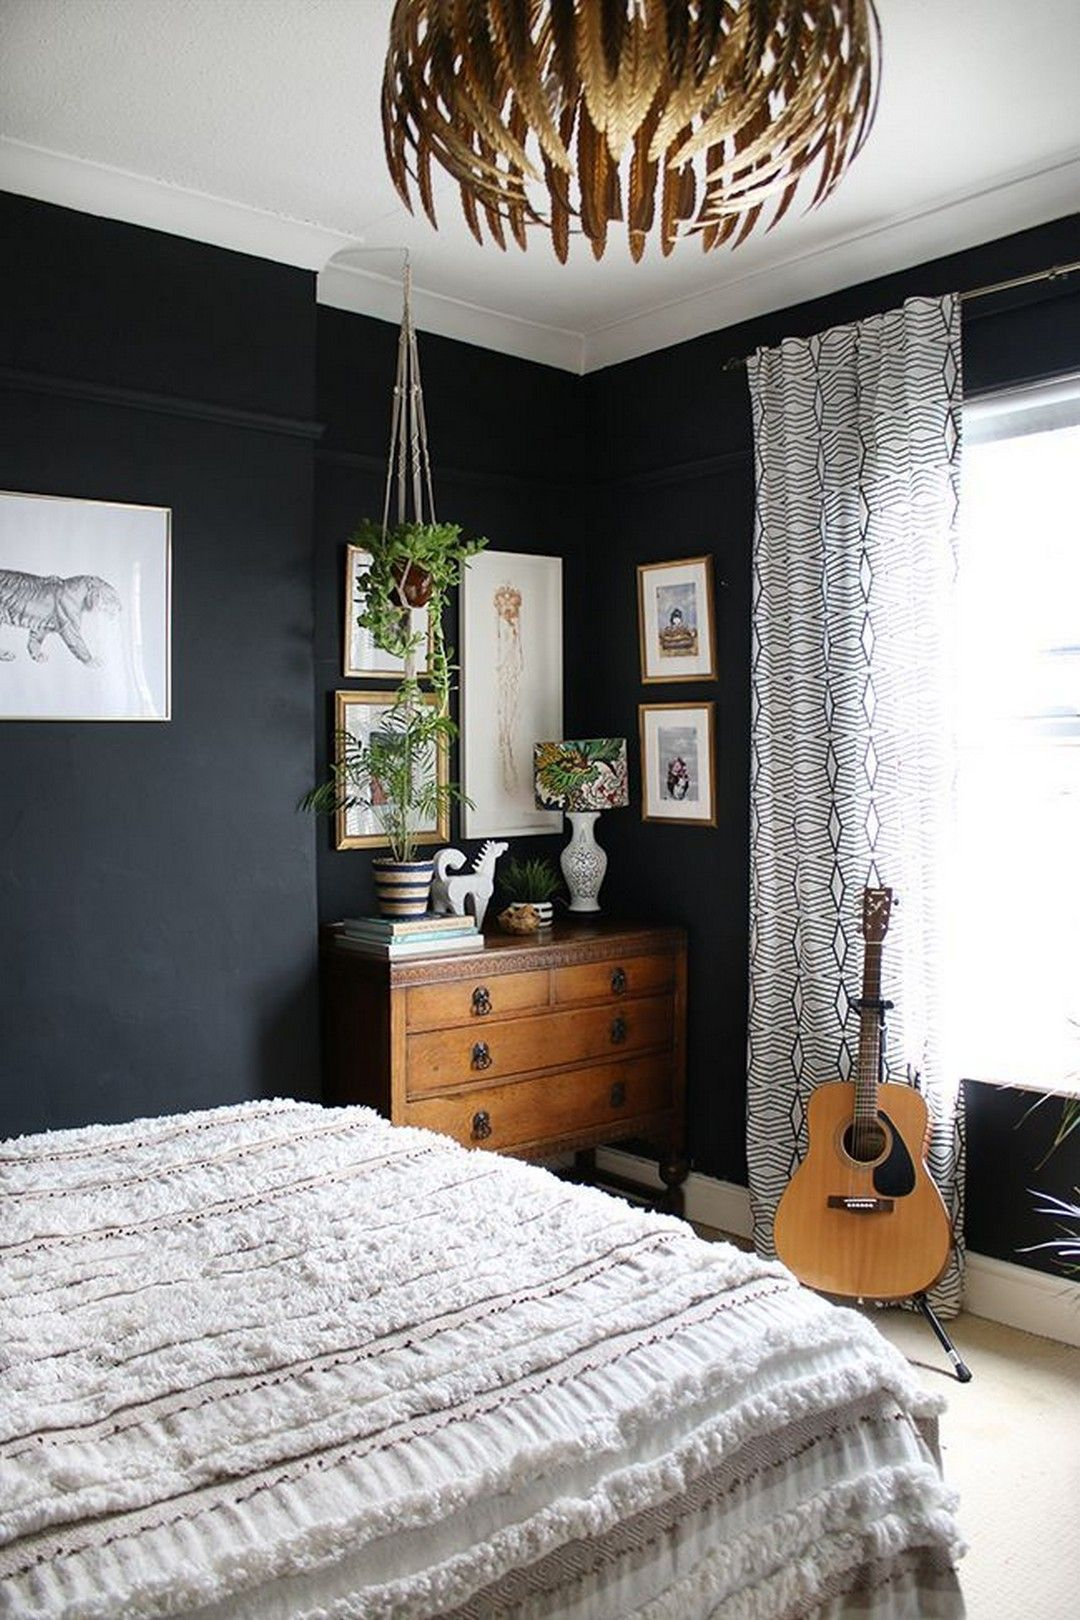 50 Savvy Industrial Bedroom Decor Ideas For Your Home is part of Industrial bedroom Black - The fashionable appearance of a wrought iron bed can boost the expression of any bedroom however, you will want to be careful to match the kind of the bed to the fashion of your bedroom decor  In a tiny bedroom